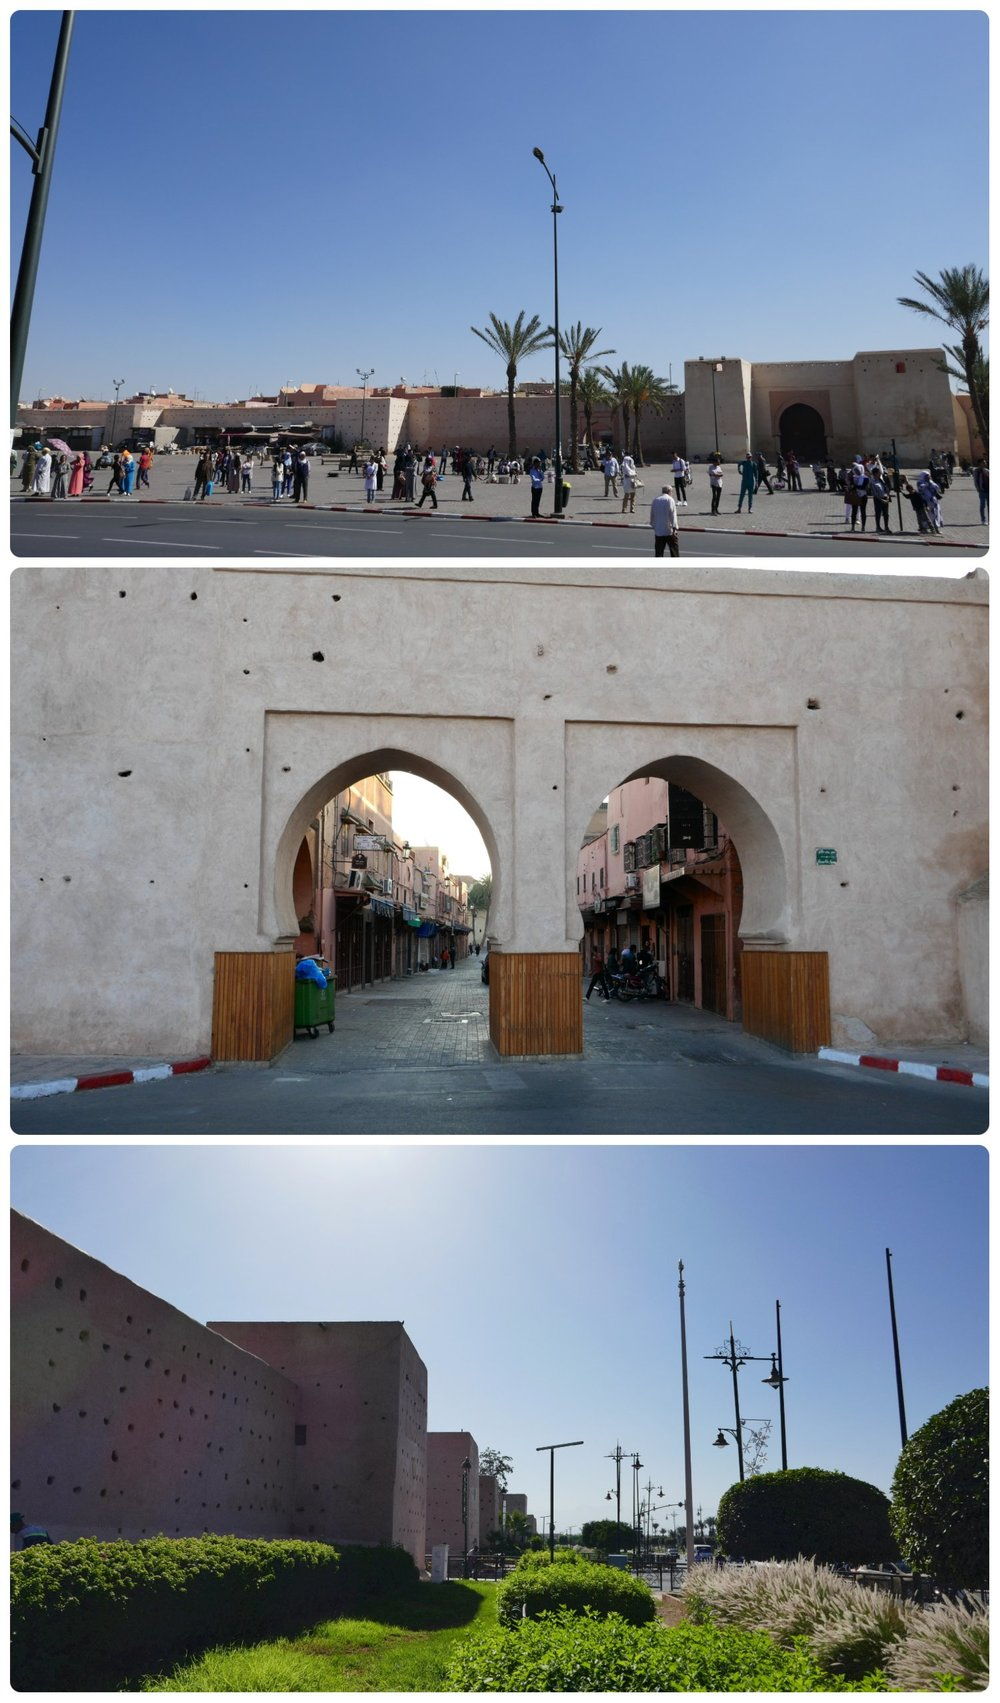 The Medina (Old Town) Marrakech is enclosed by walls and can be entered through many different gates.